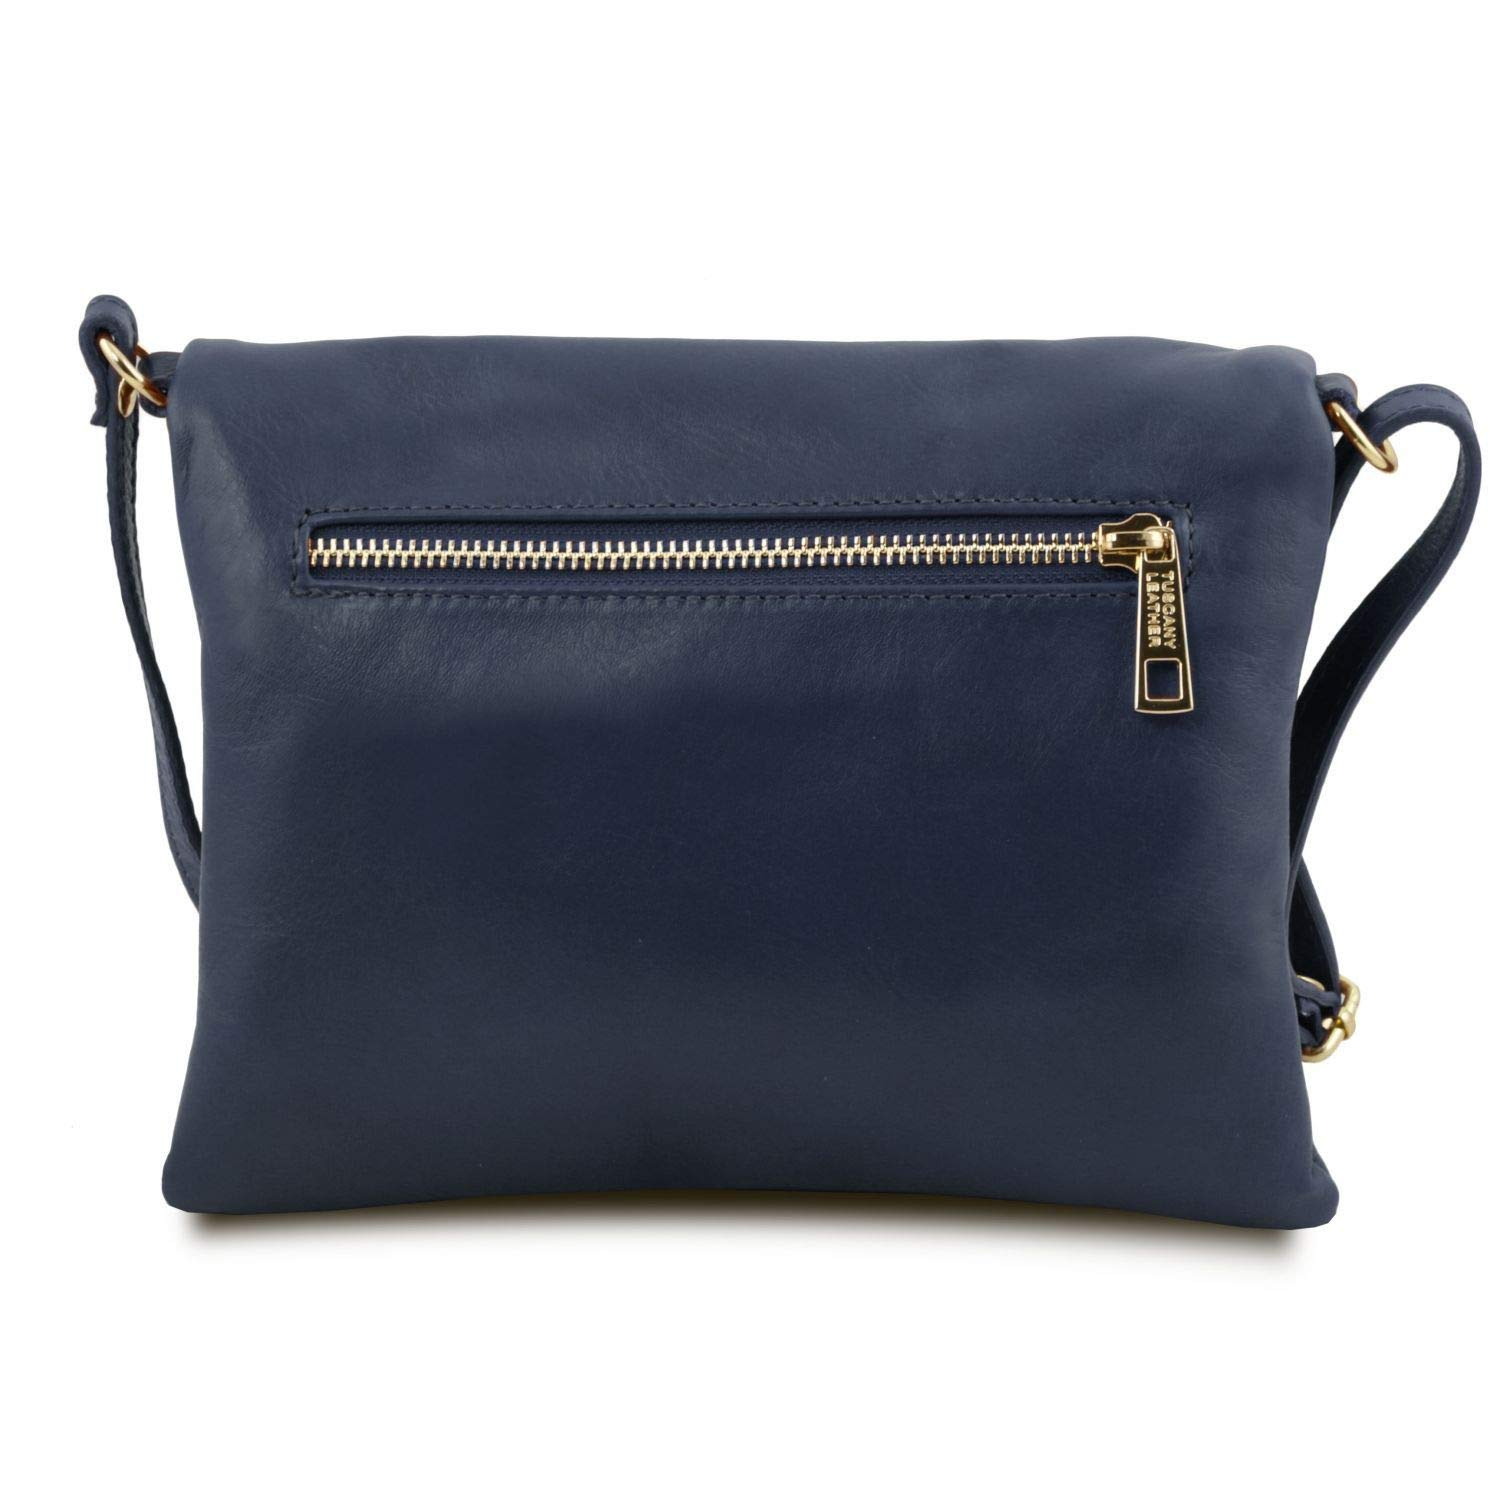 46bd3d137667 Amazon.com  Tuscany Leather TL Young bag Shoulder bag with tassel detail  Dark Blue  Tuscany Leather Official Store